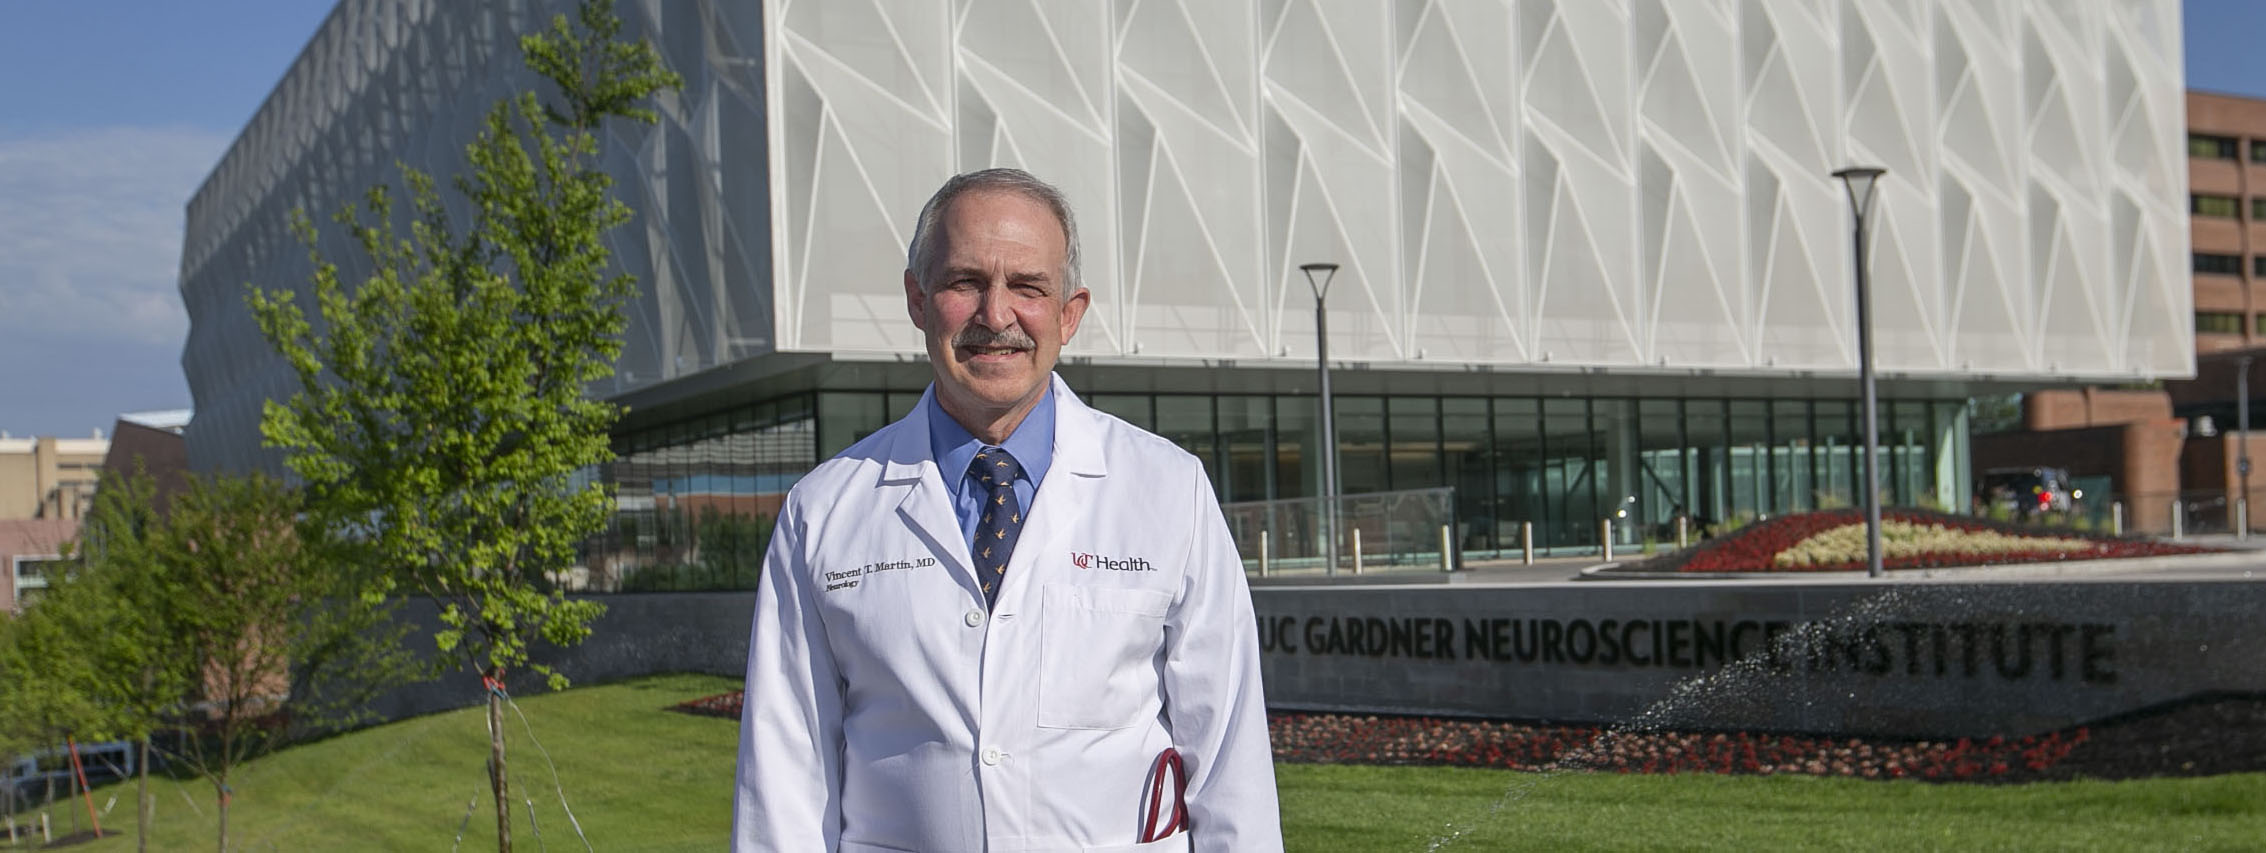 Vincent Martin, MD, shown at the UC Gardner Neuroscience Institute